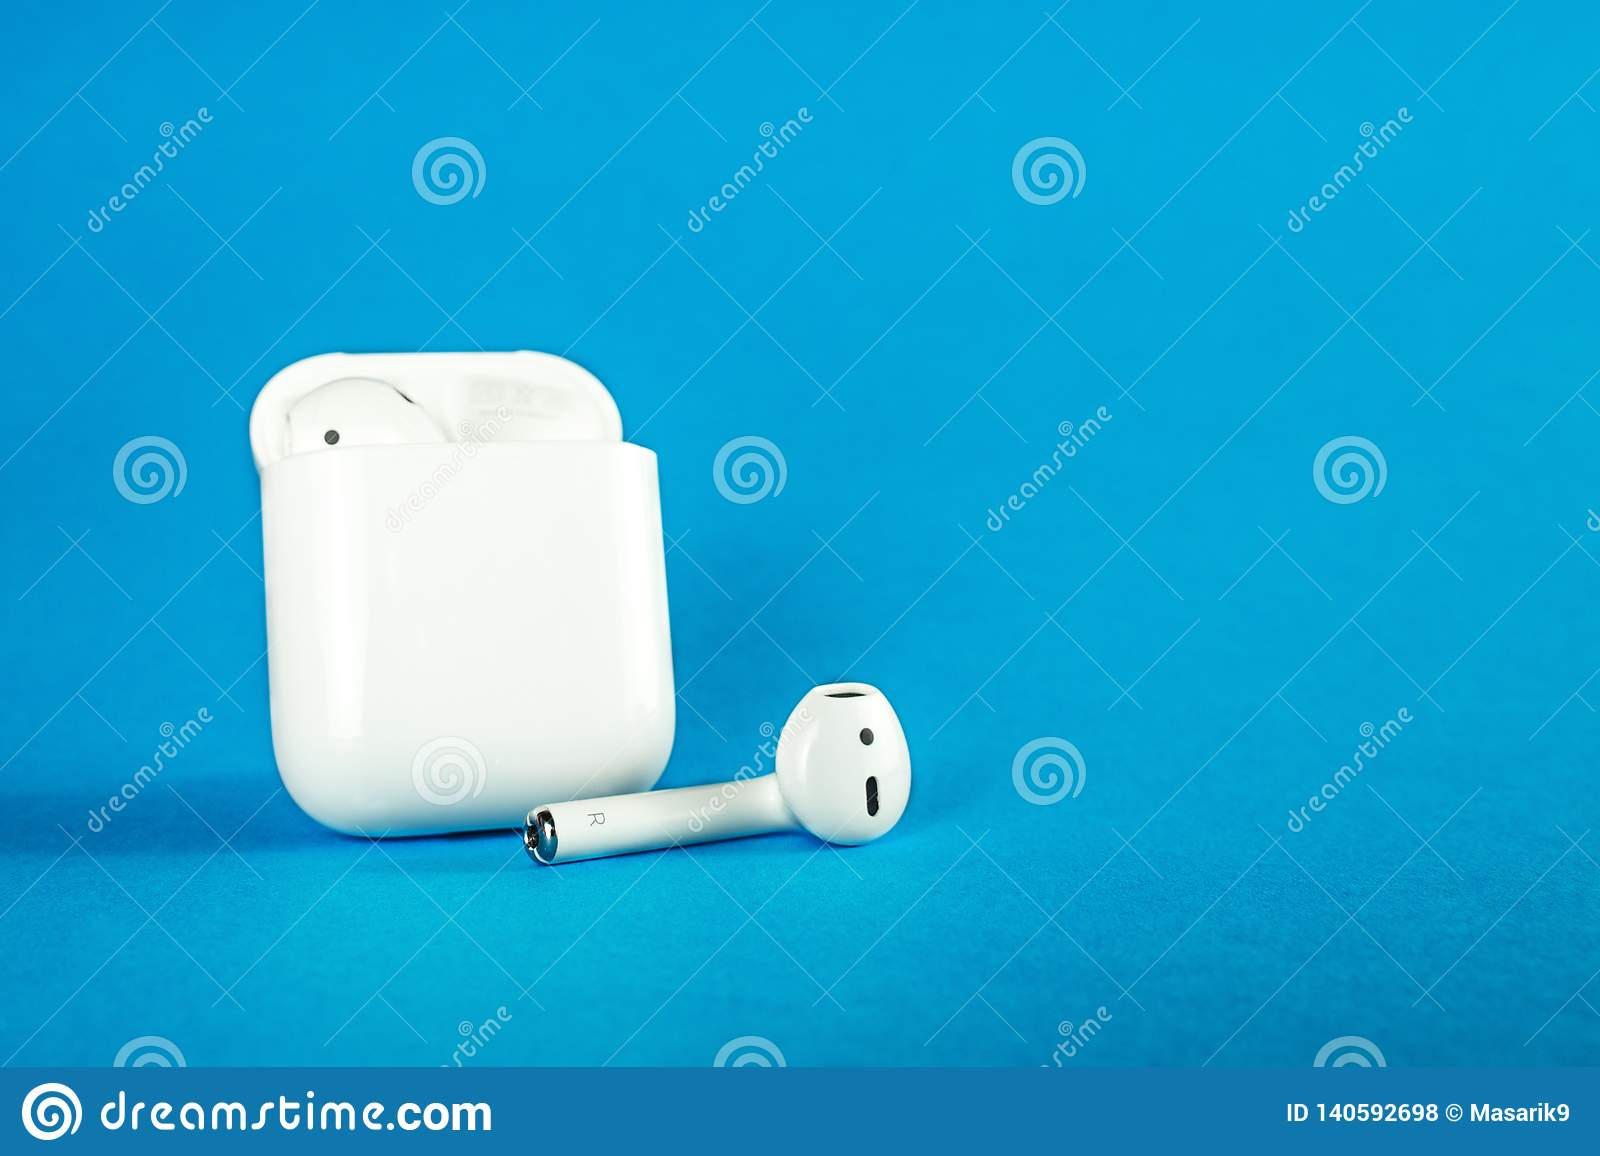 new arrival 2697b 7137c ROSTOV-ON-DON, RUSSIA - February 24, 2019: Apple AirPods Wireless ...